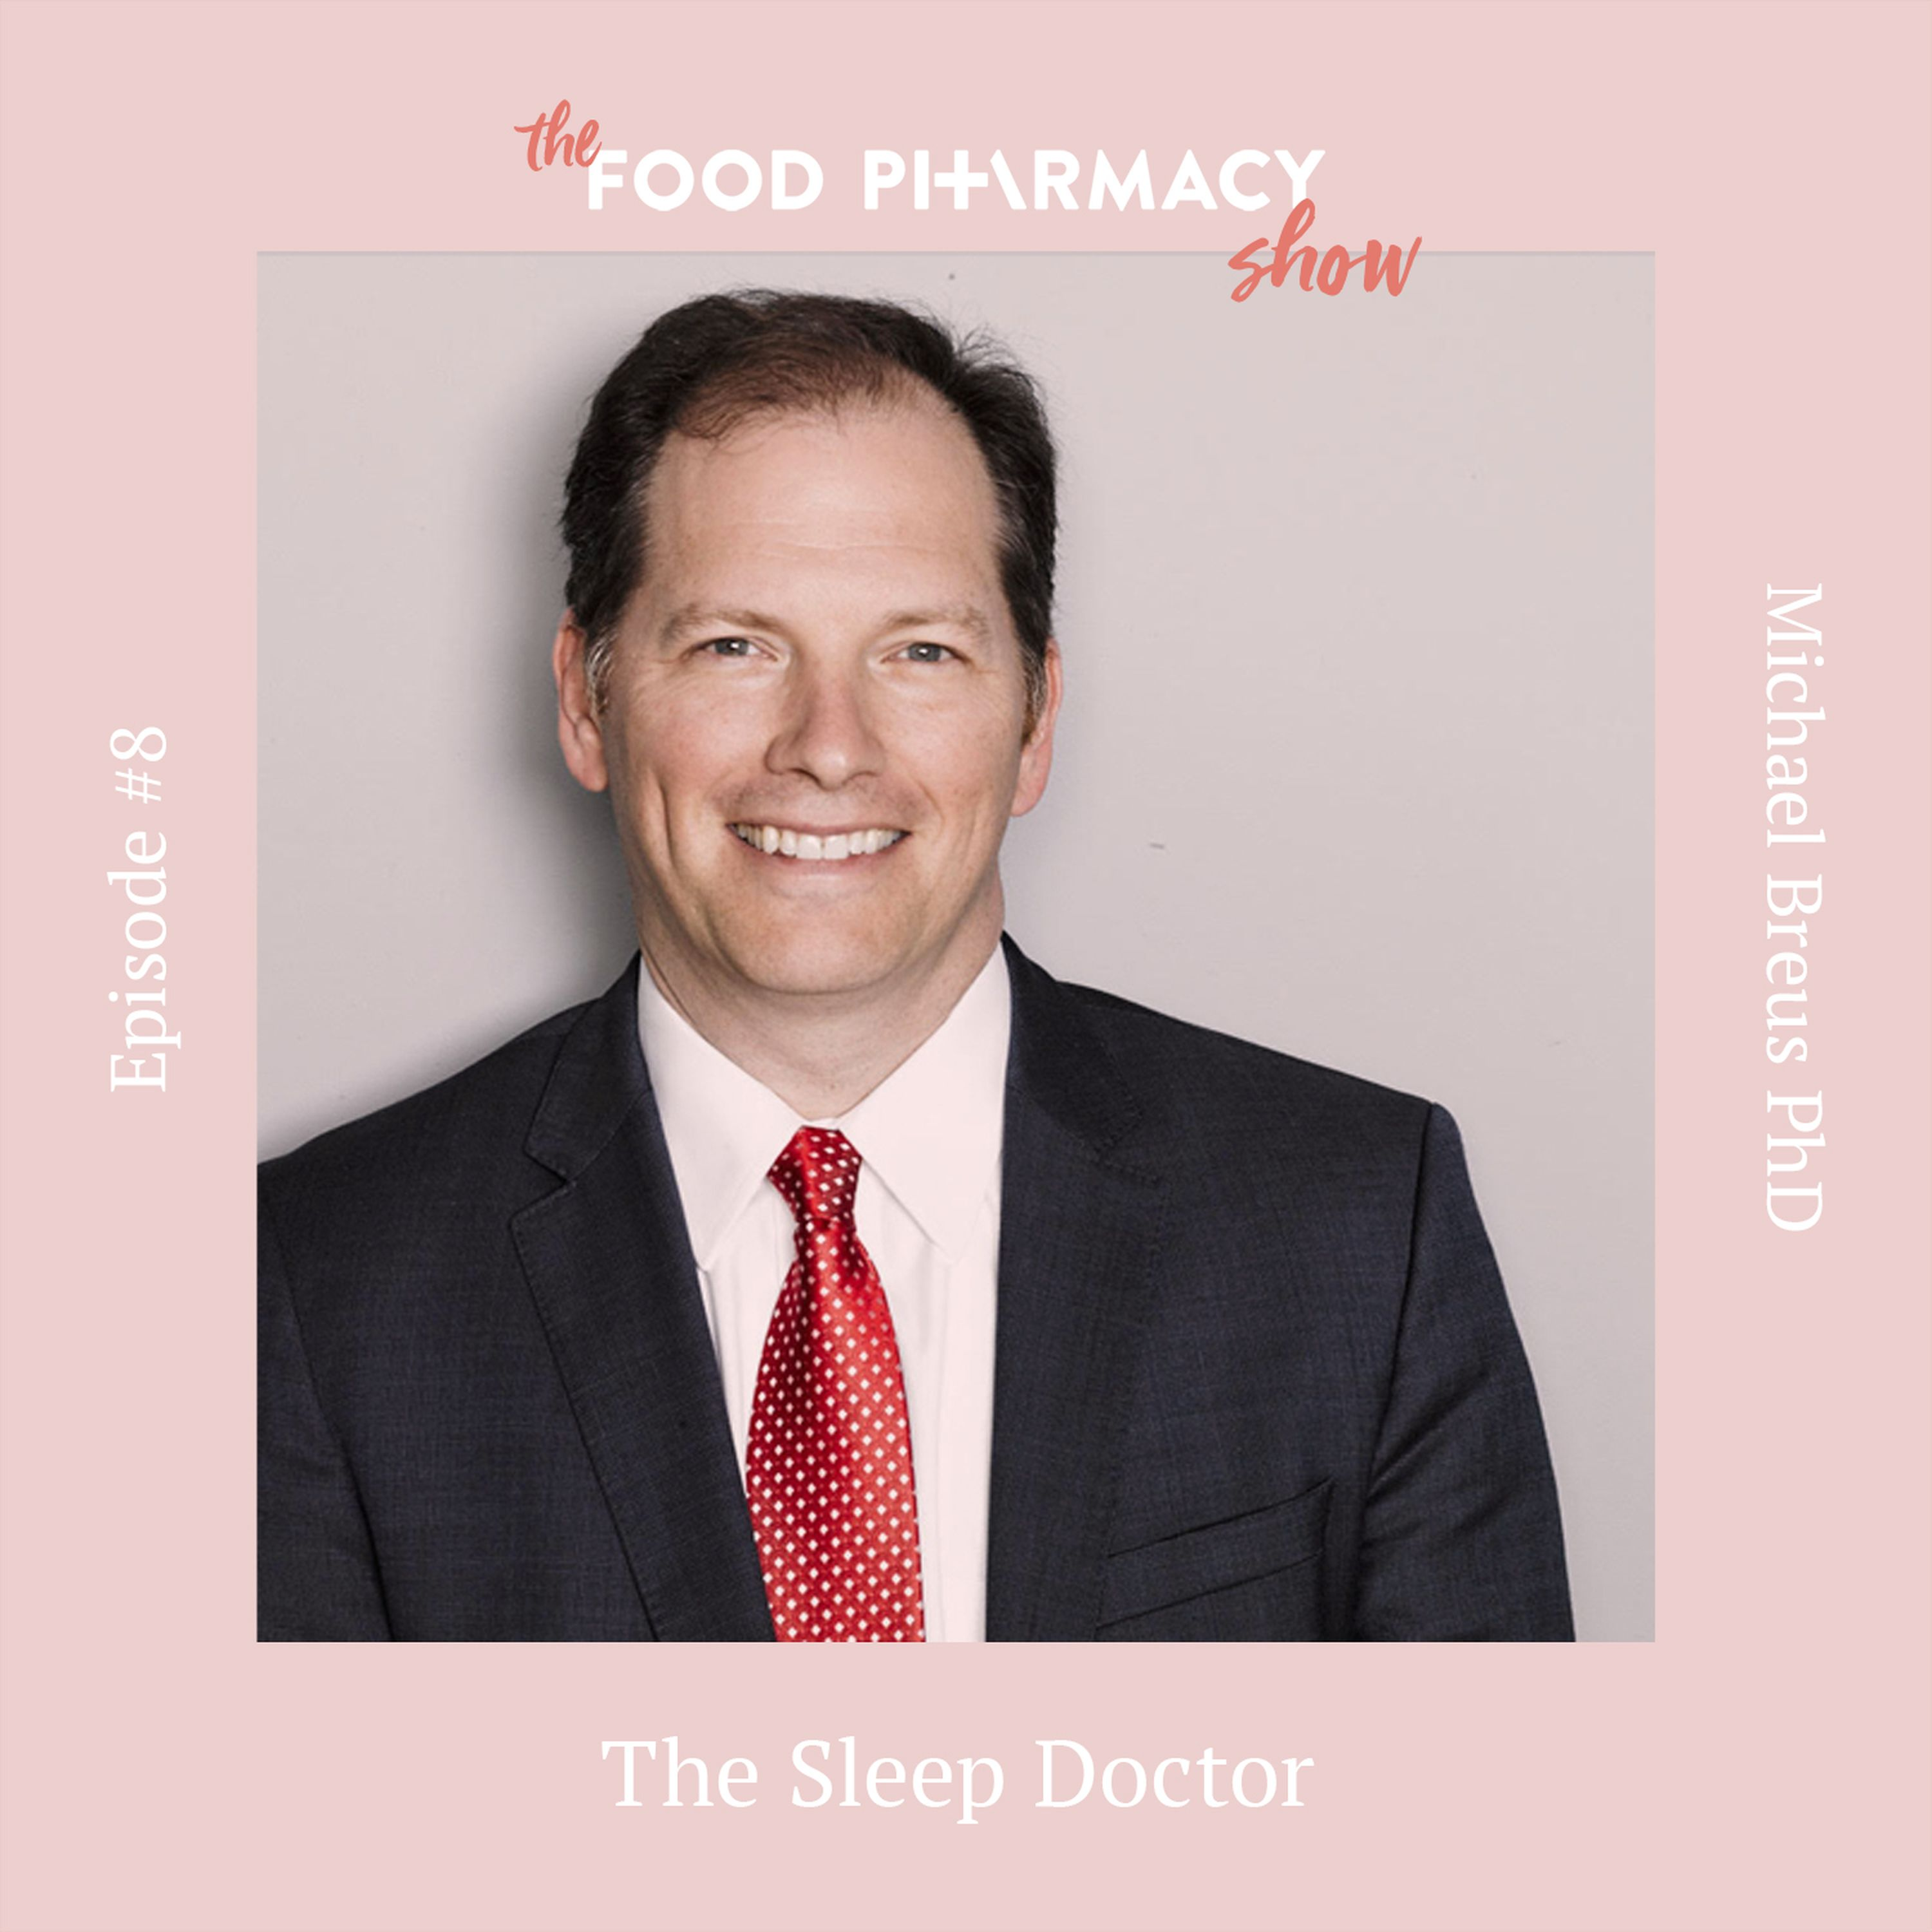 8. Michael Breus PhD, aka the Sleep Doctor - the quality of your sleep affects almost everything in your life